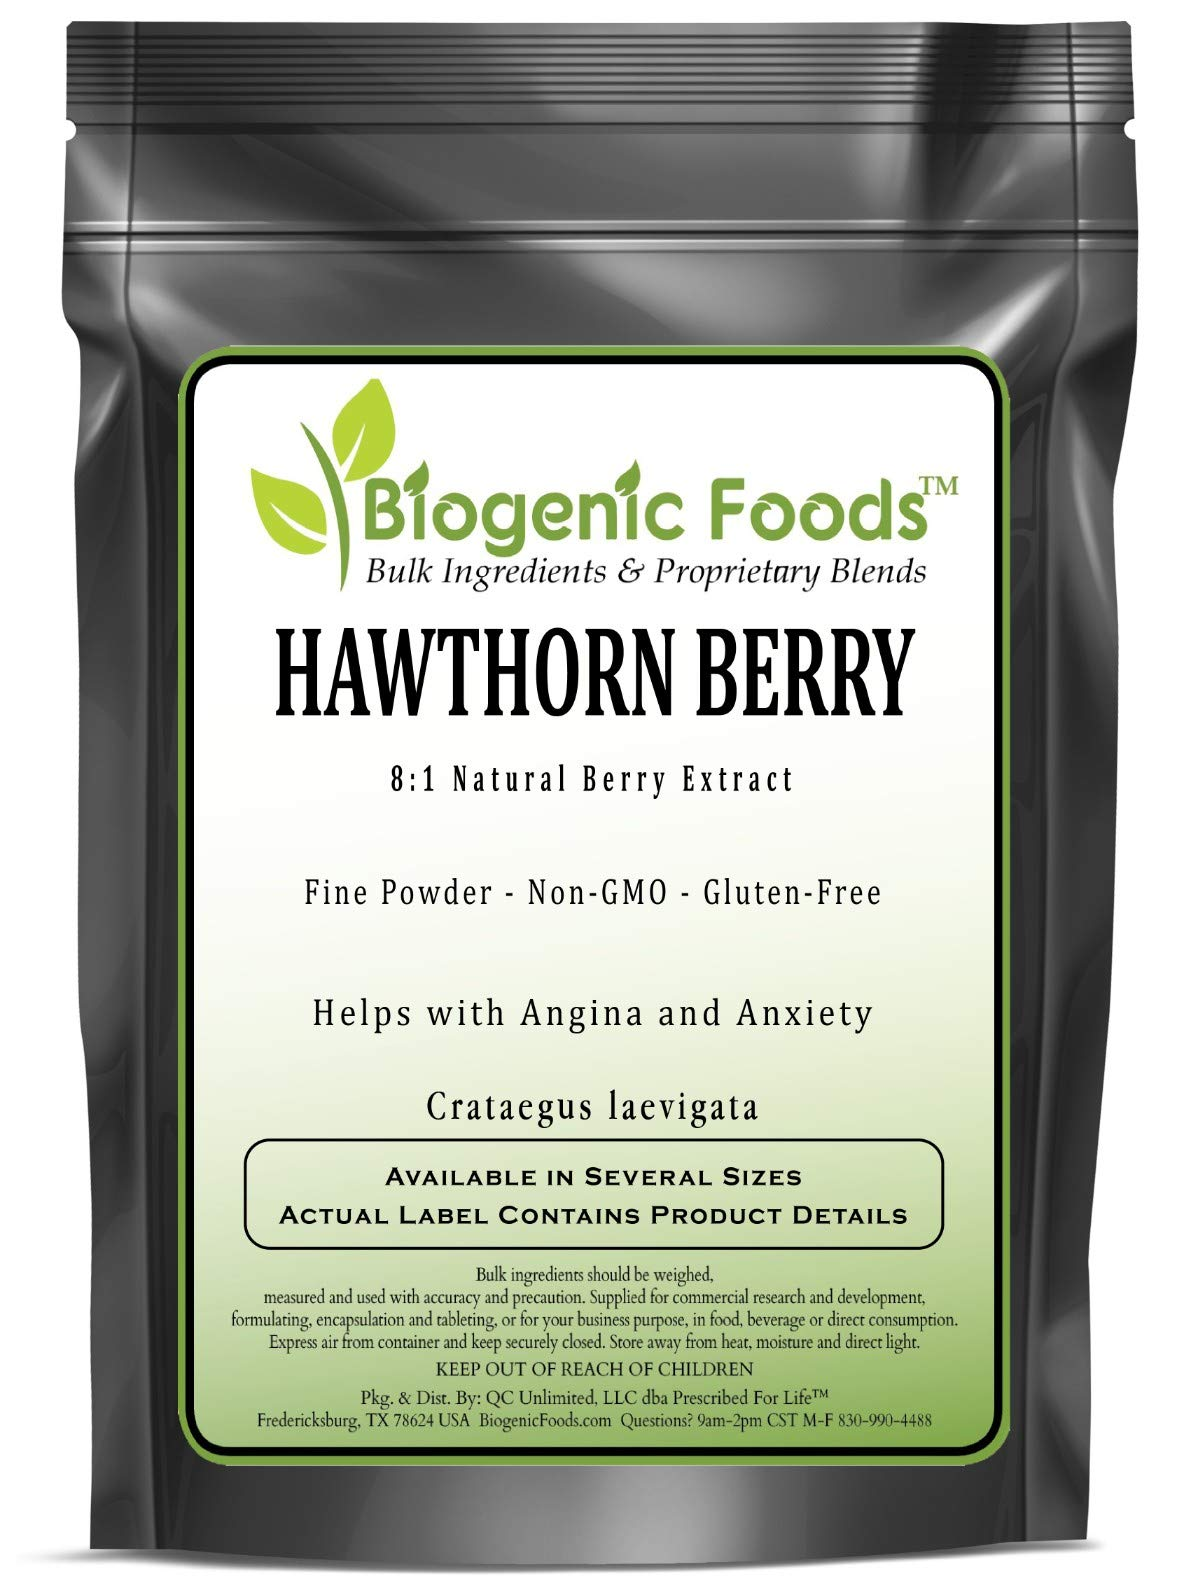 Hawthorn Berry - 8:1 Natural Berry Fine Powder Extract (Crataegus laevigata), 25 kg